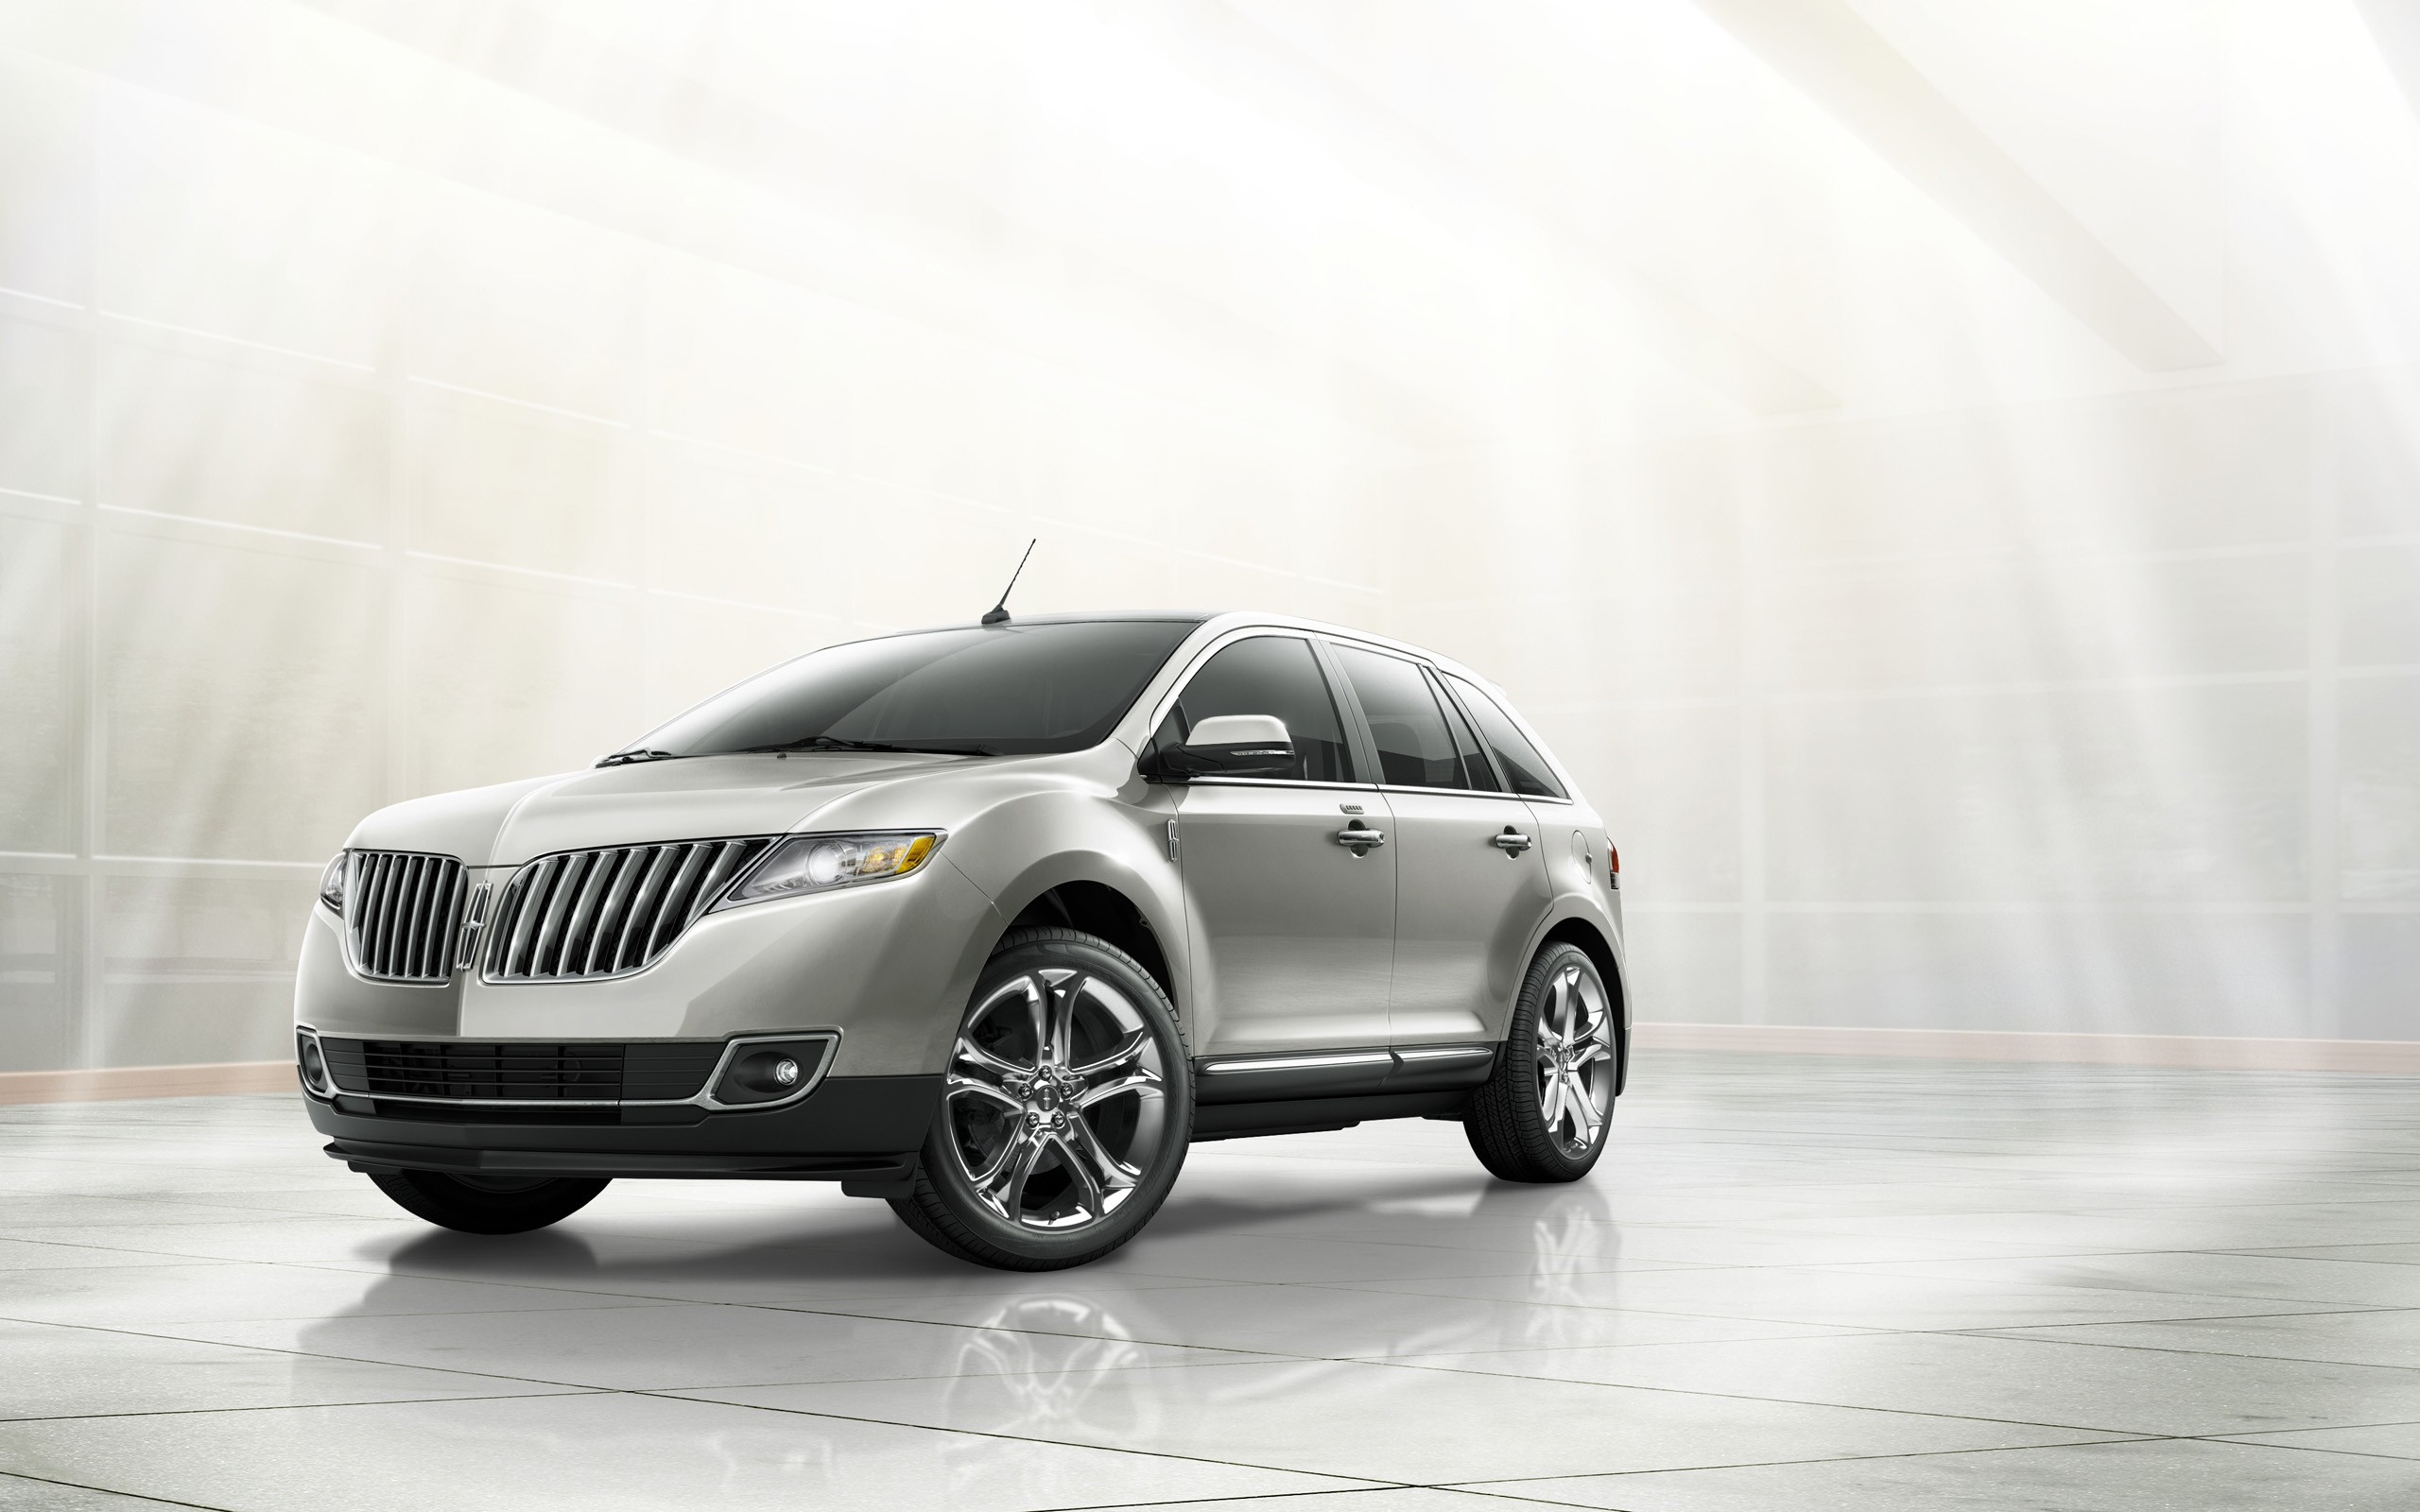 2014 Lincoln MKX Wallpaper | HD Car Wallpapers | ID #4368